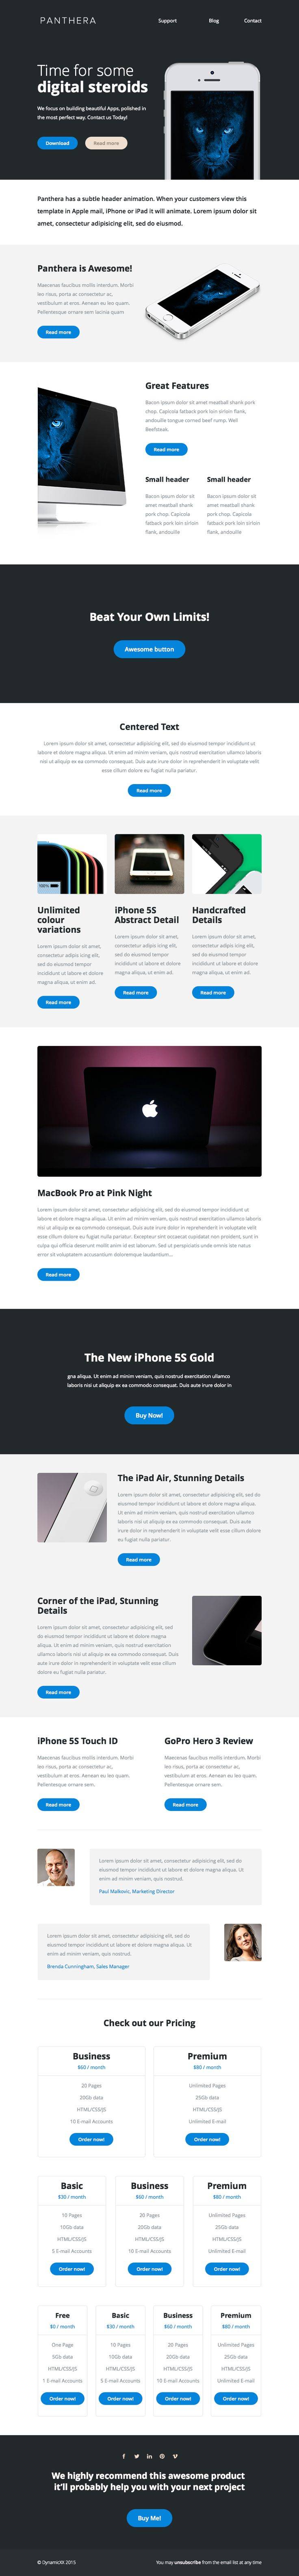 Best Newsletters Images On   Html Email Templates